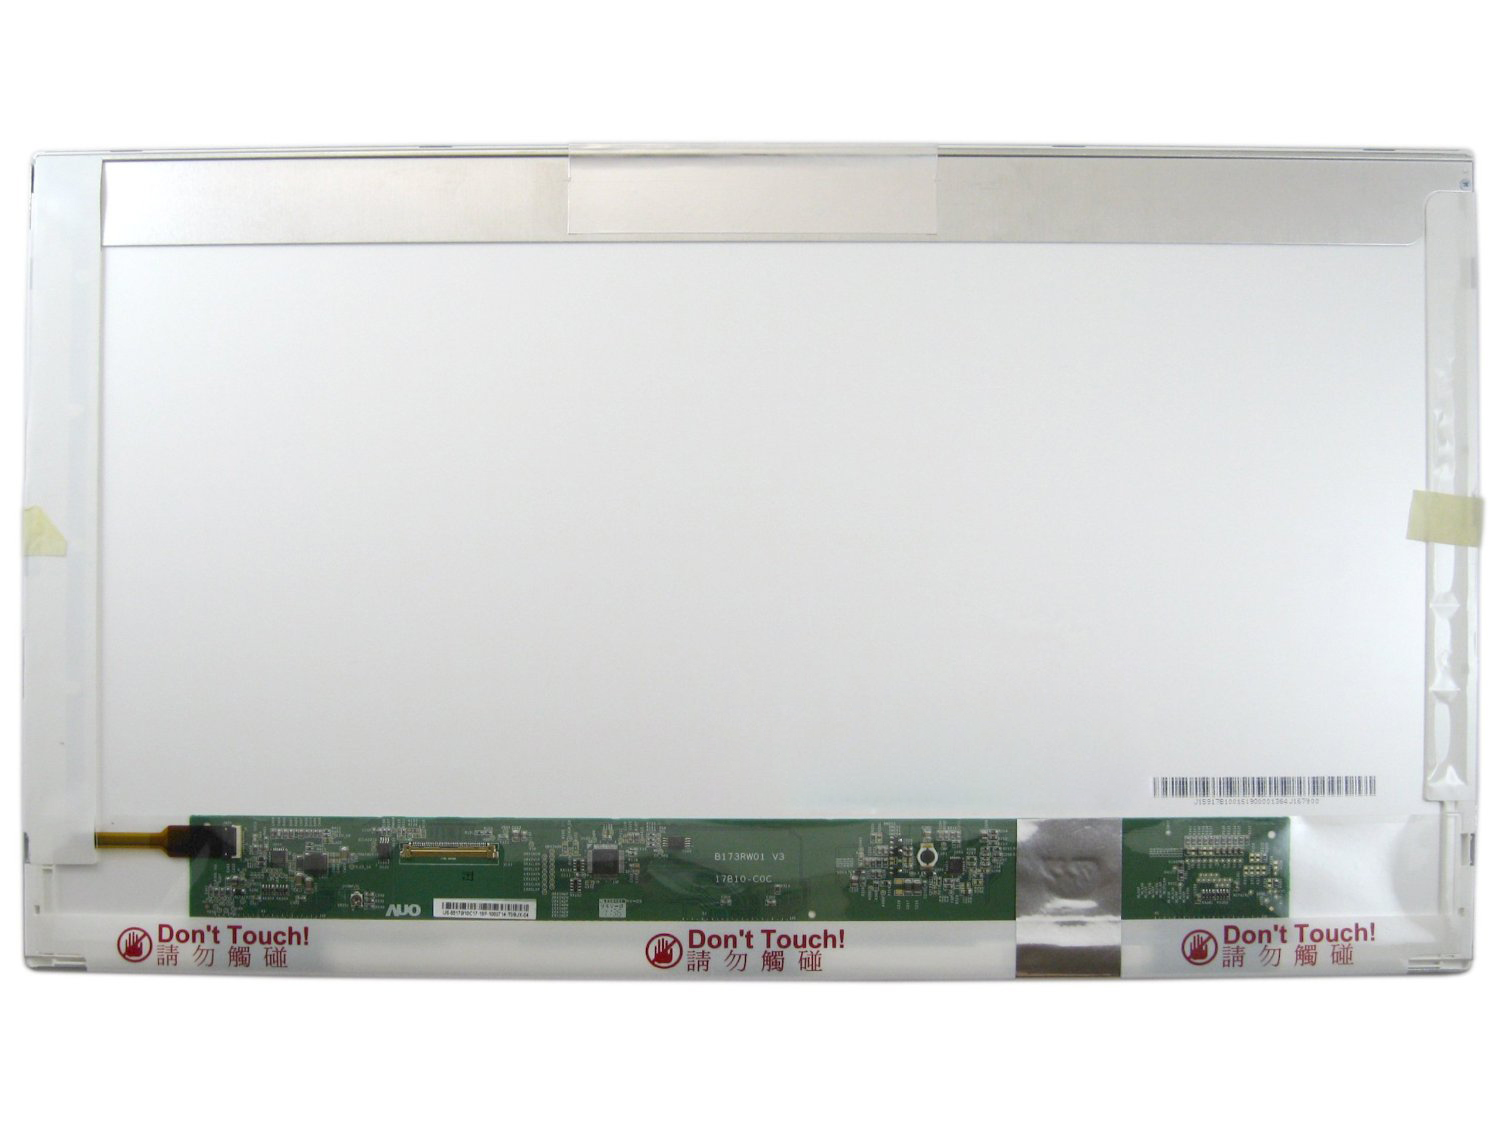 QuYing Laptop LCD Screen for Acer ASPIRE V3-772 V3-772G E5-721 E5-731 E5-771 E5-771G ES1-771 SERIES (17.3 inch 1600x900 30pin) quying laptop lcd screen for acer extensa 5235 as5551 series 15 6 inch 1366x768 40pin tk